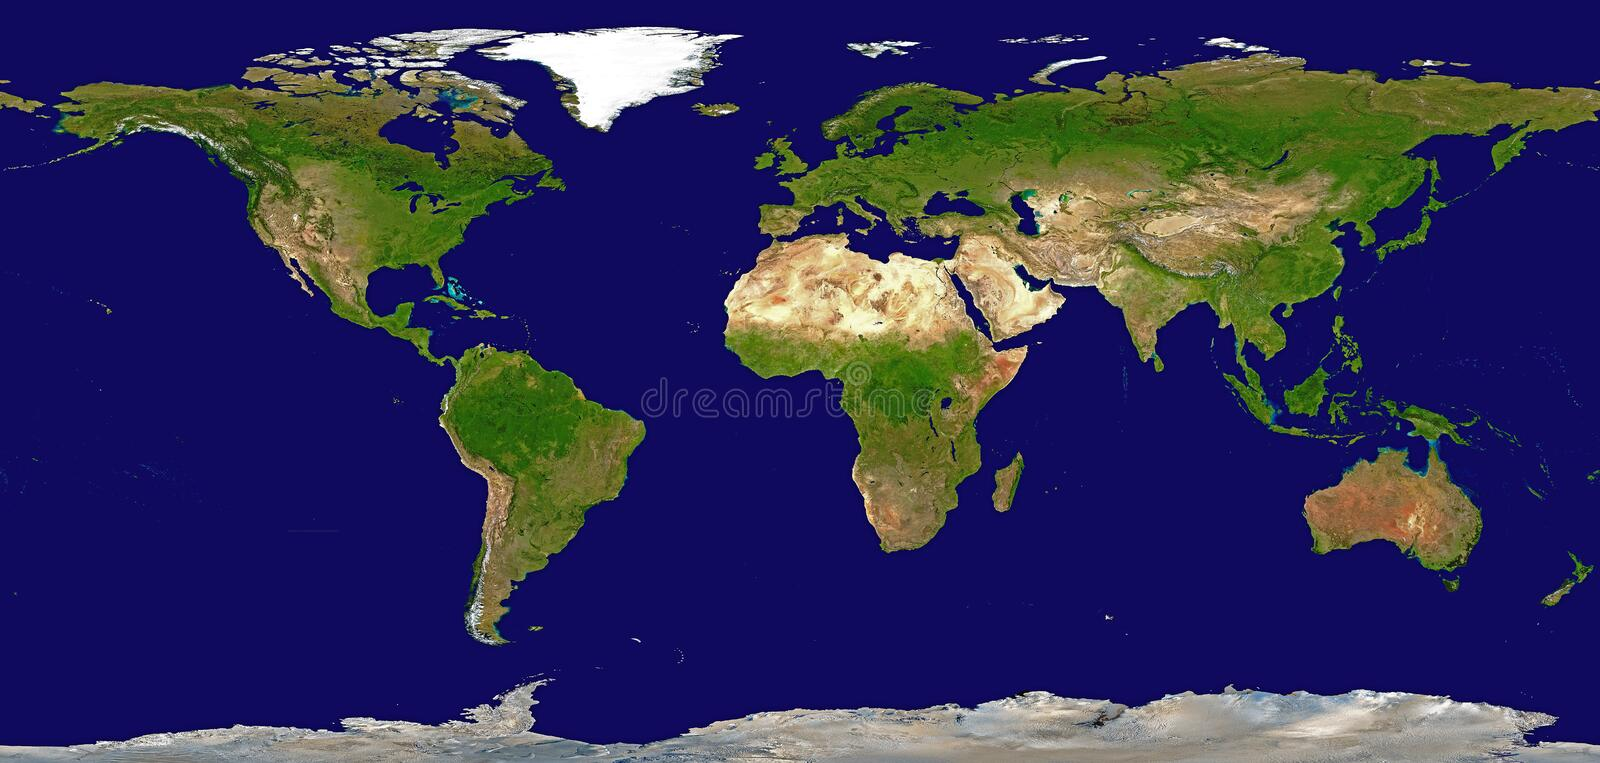 Shaded Relief Map of the World royalty free illustration